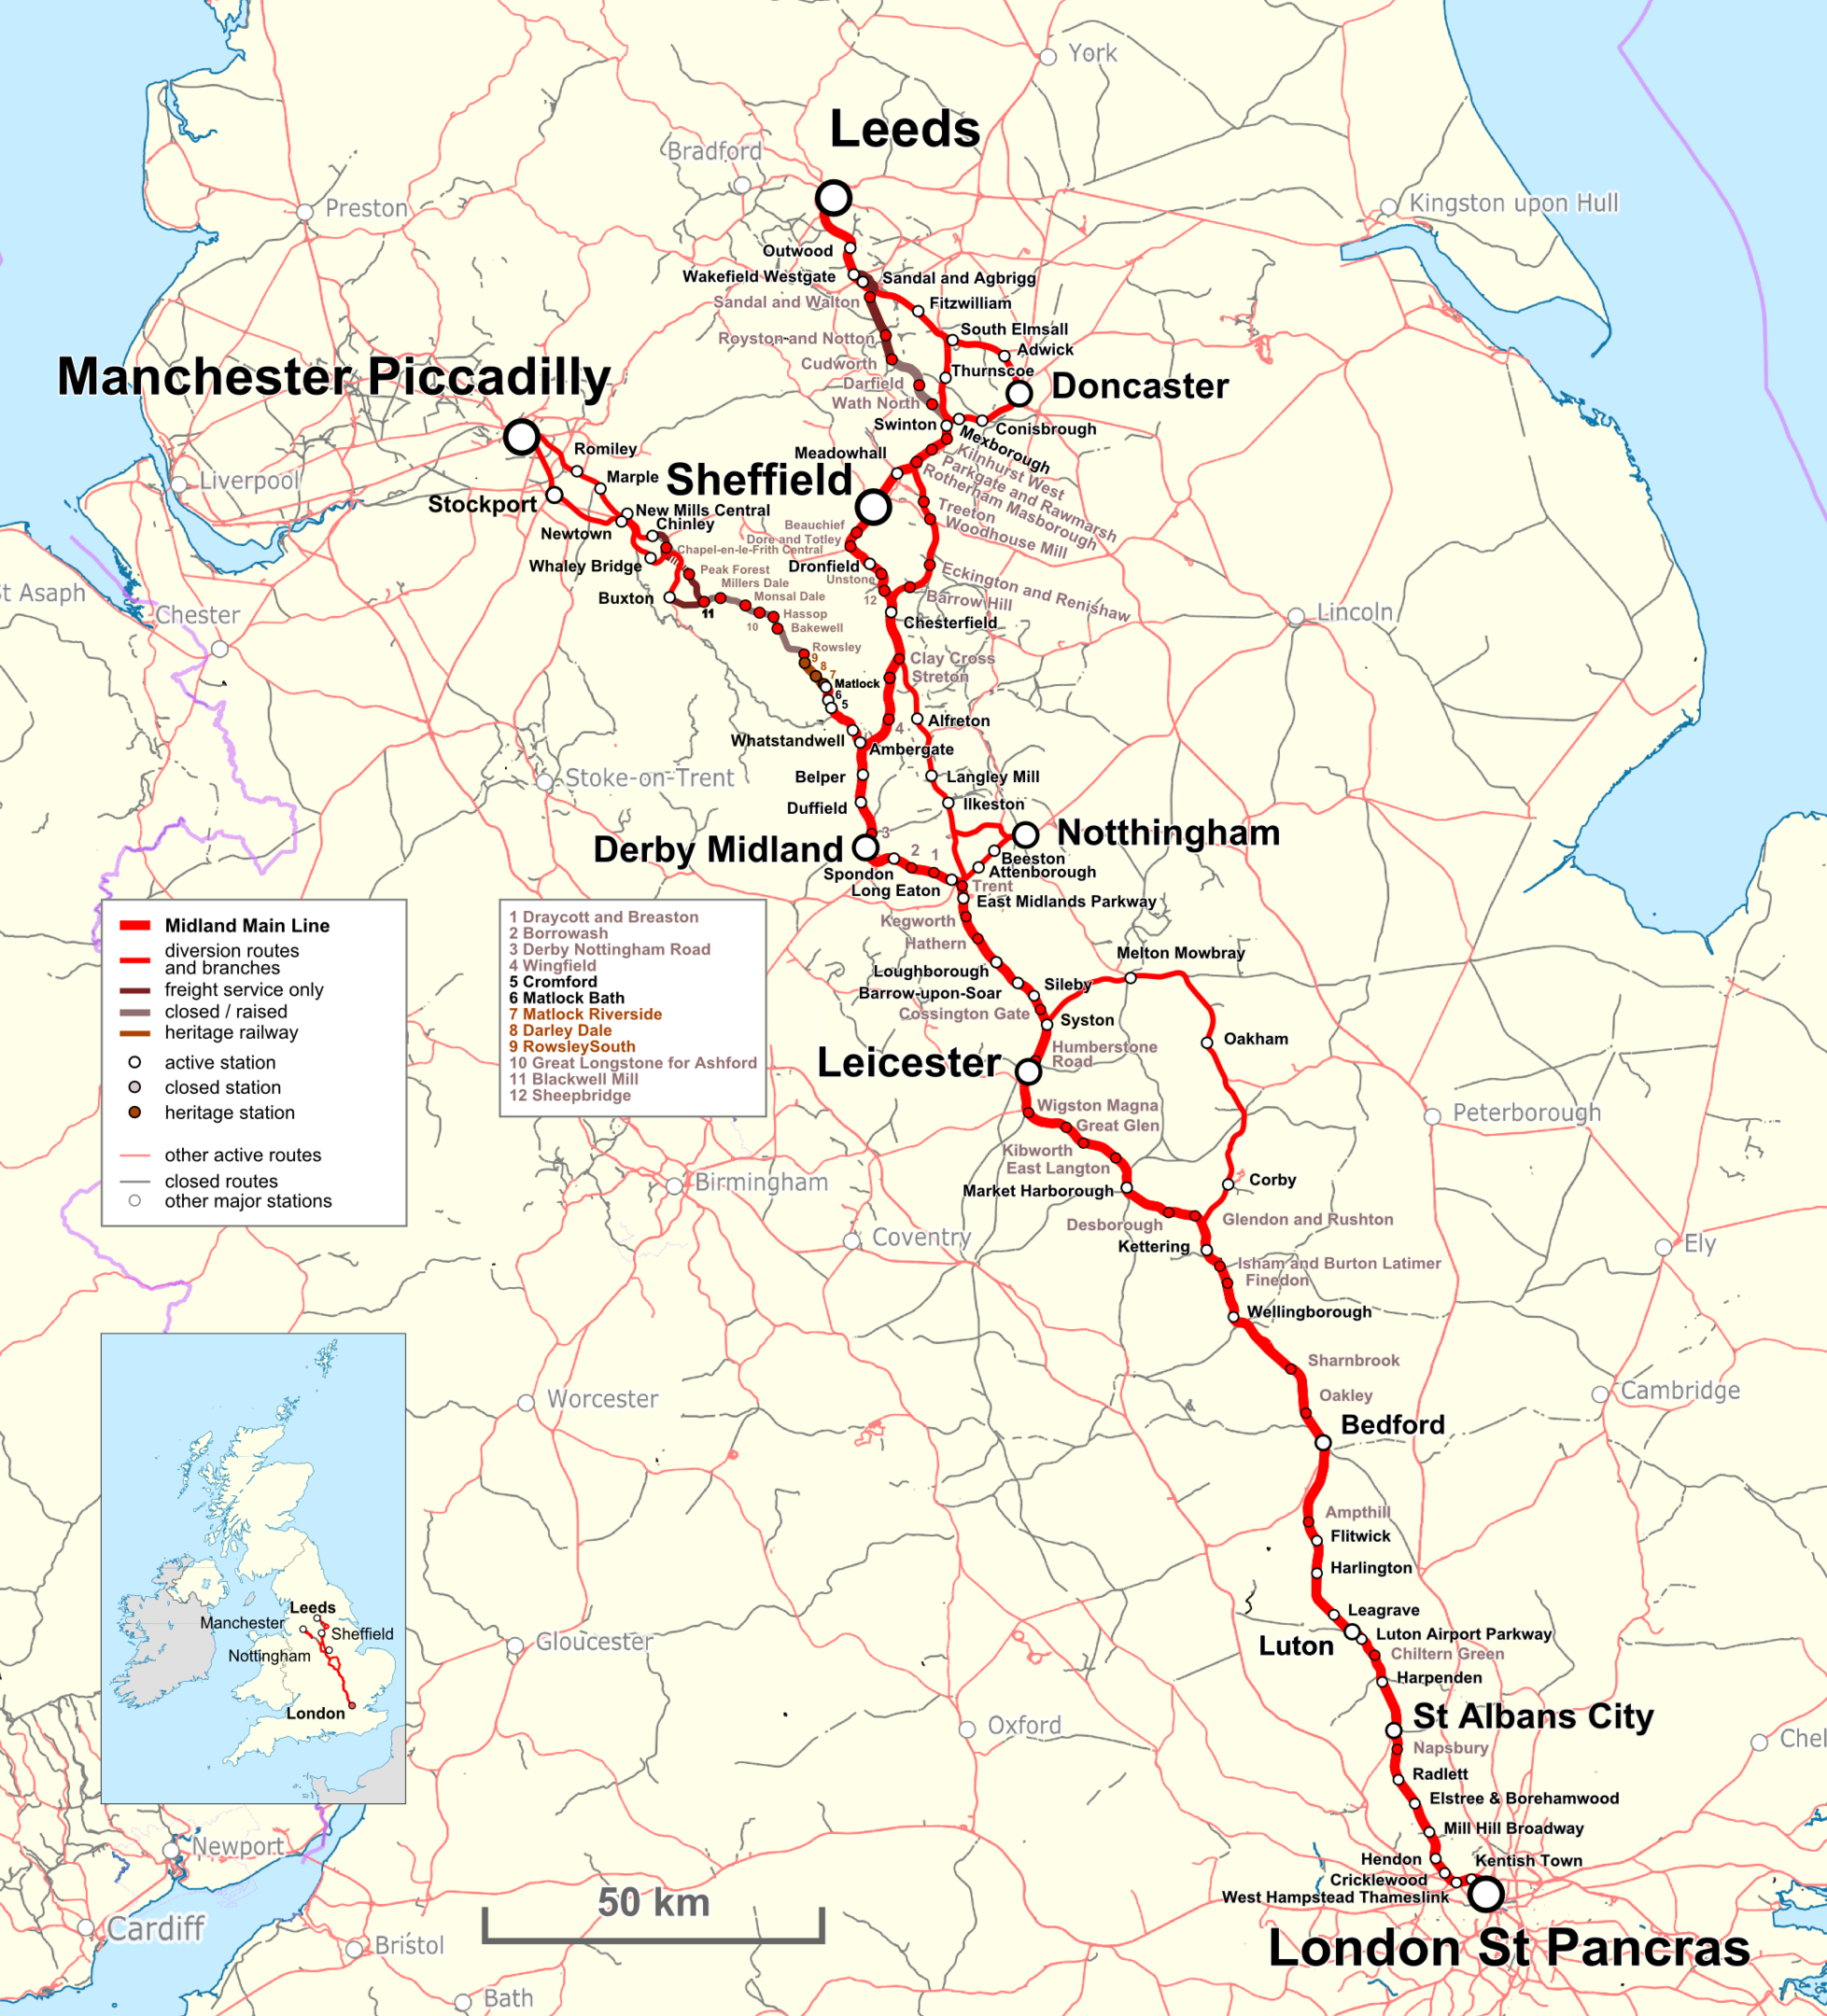 Map of the Midland Main Line